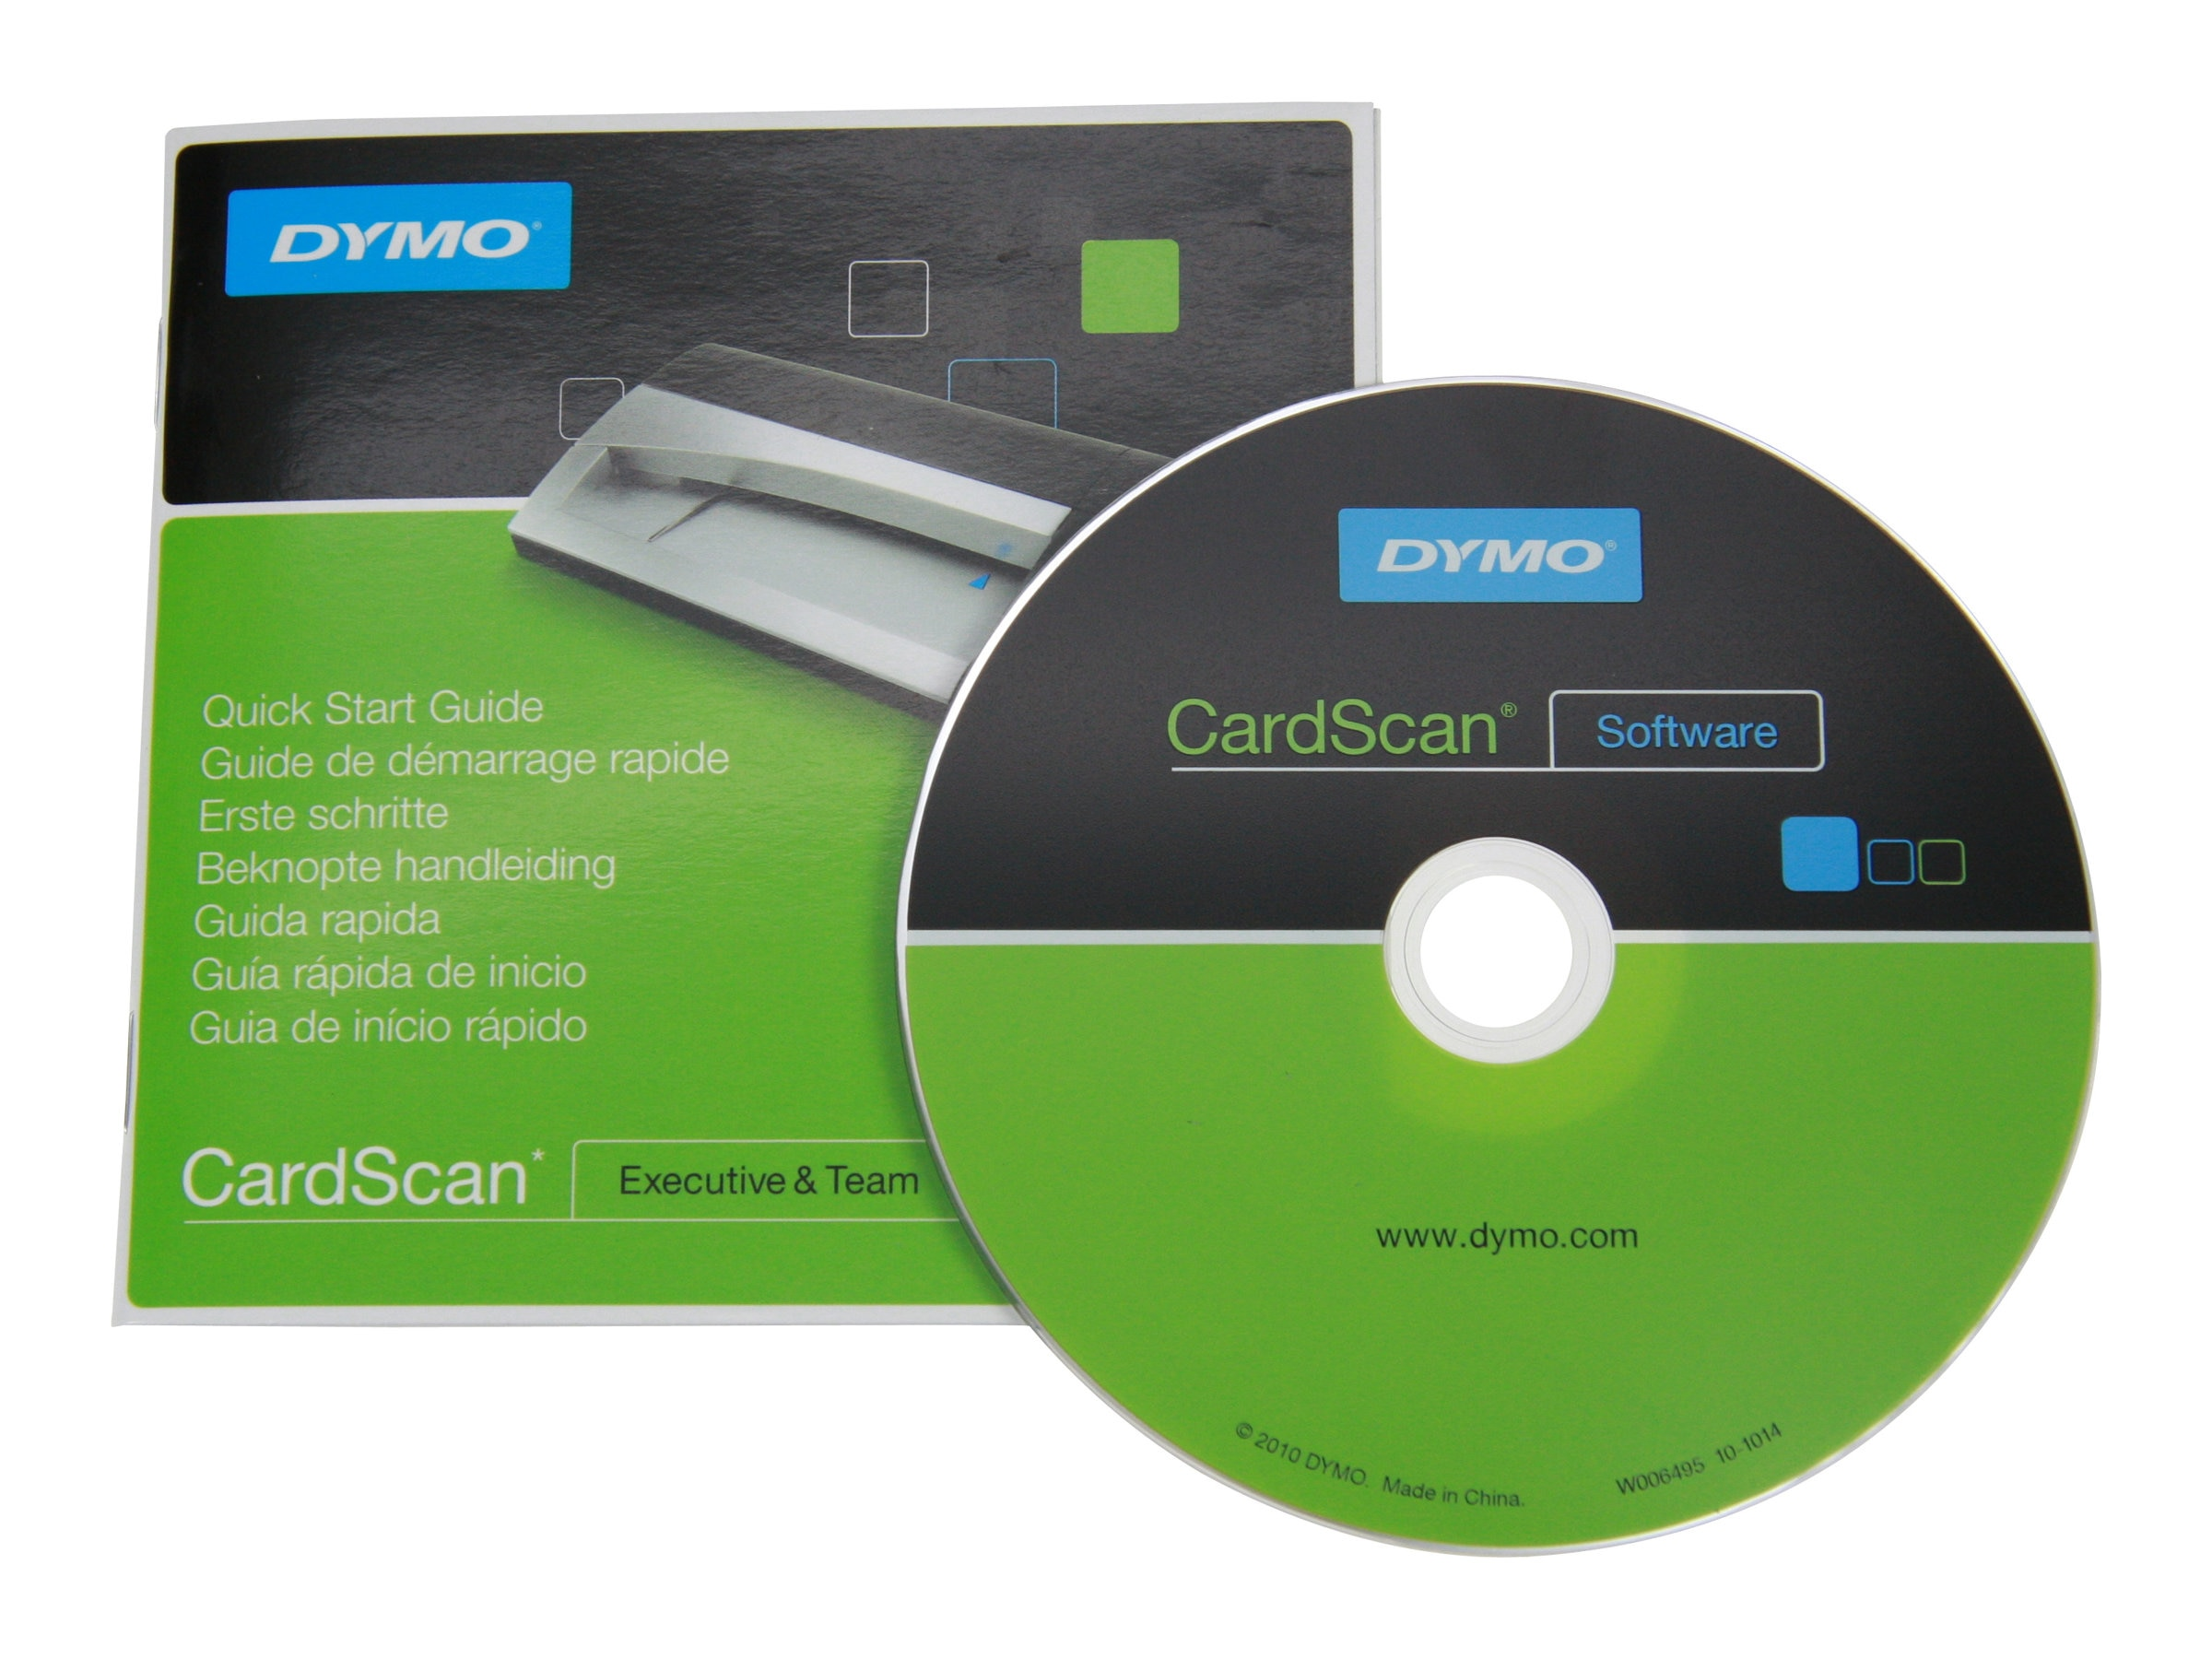 DYMO CardScan Team 9.0 1-user SW CD-ROM, 1806066, 14506150, Software - OCR & Scanner